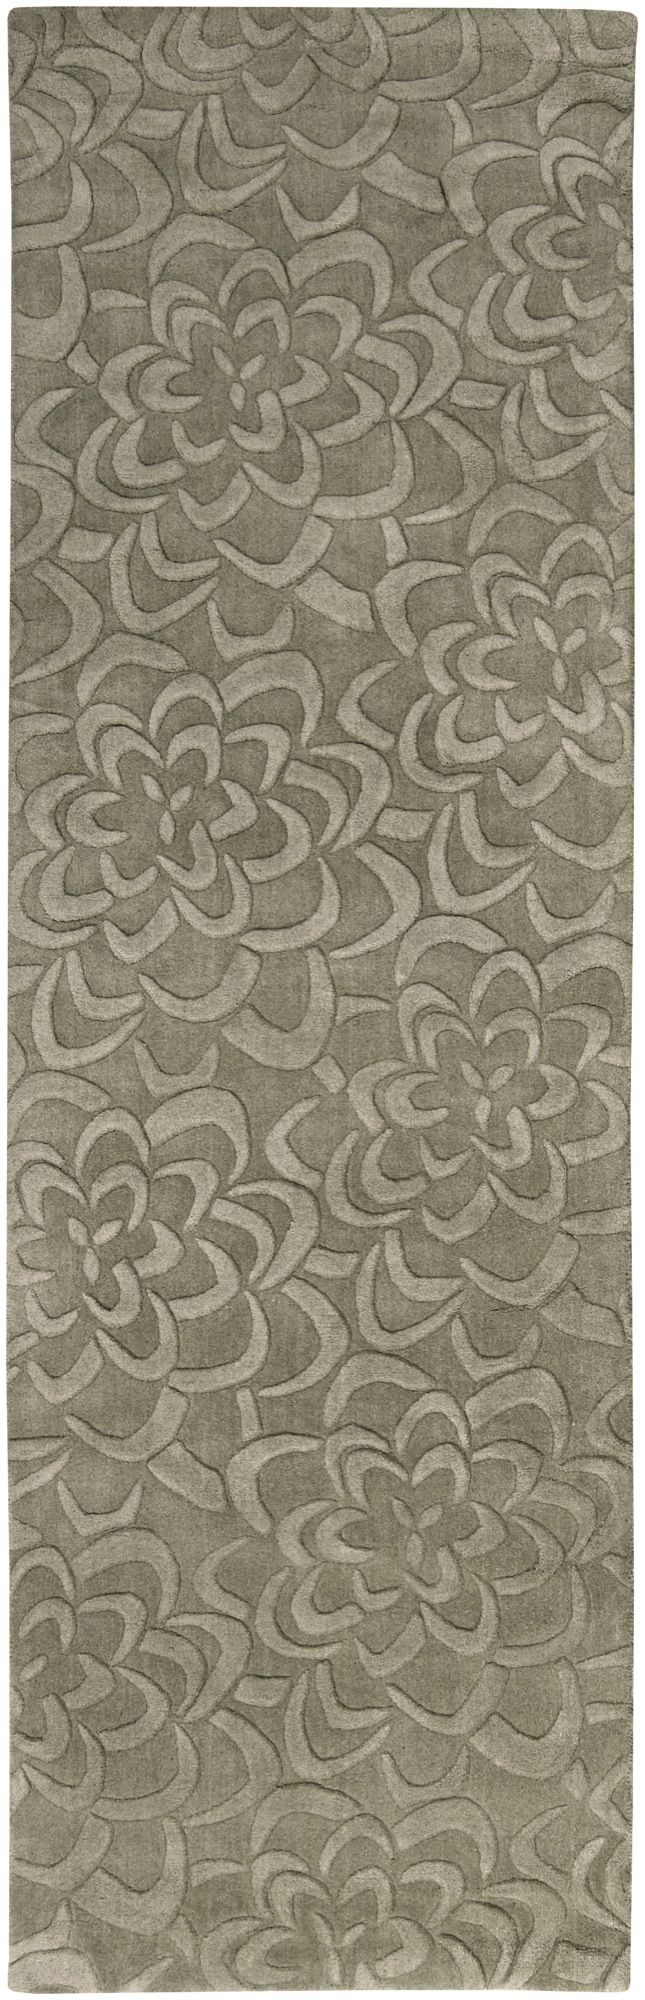 surya sculpture transitional area rug collection